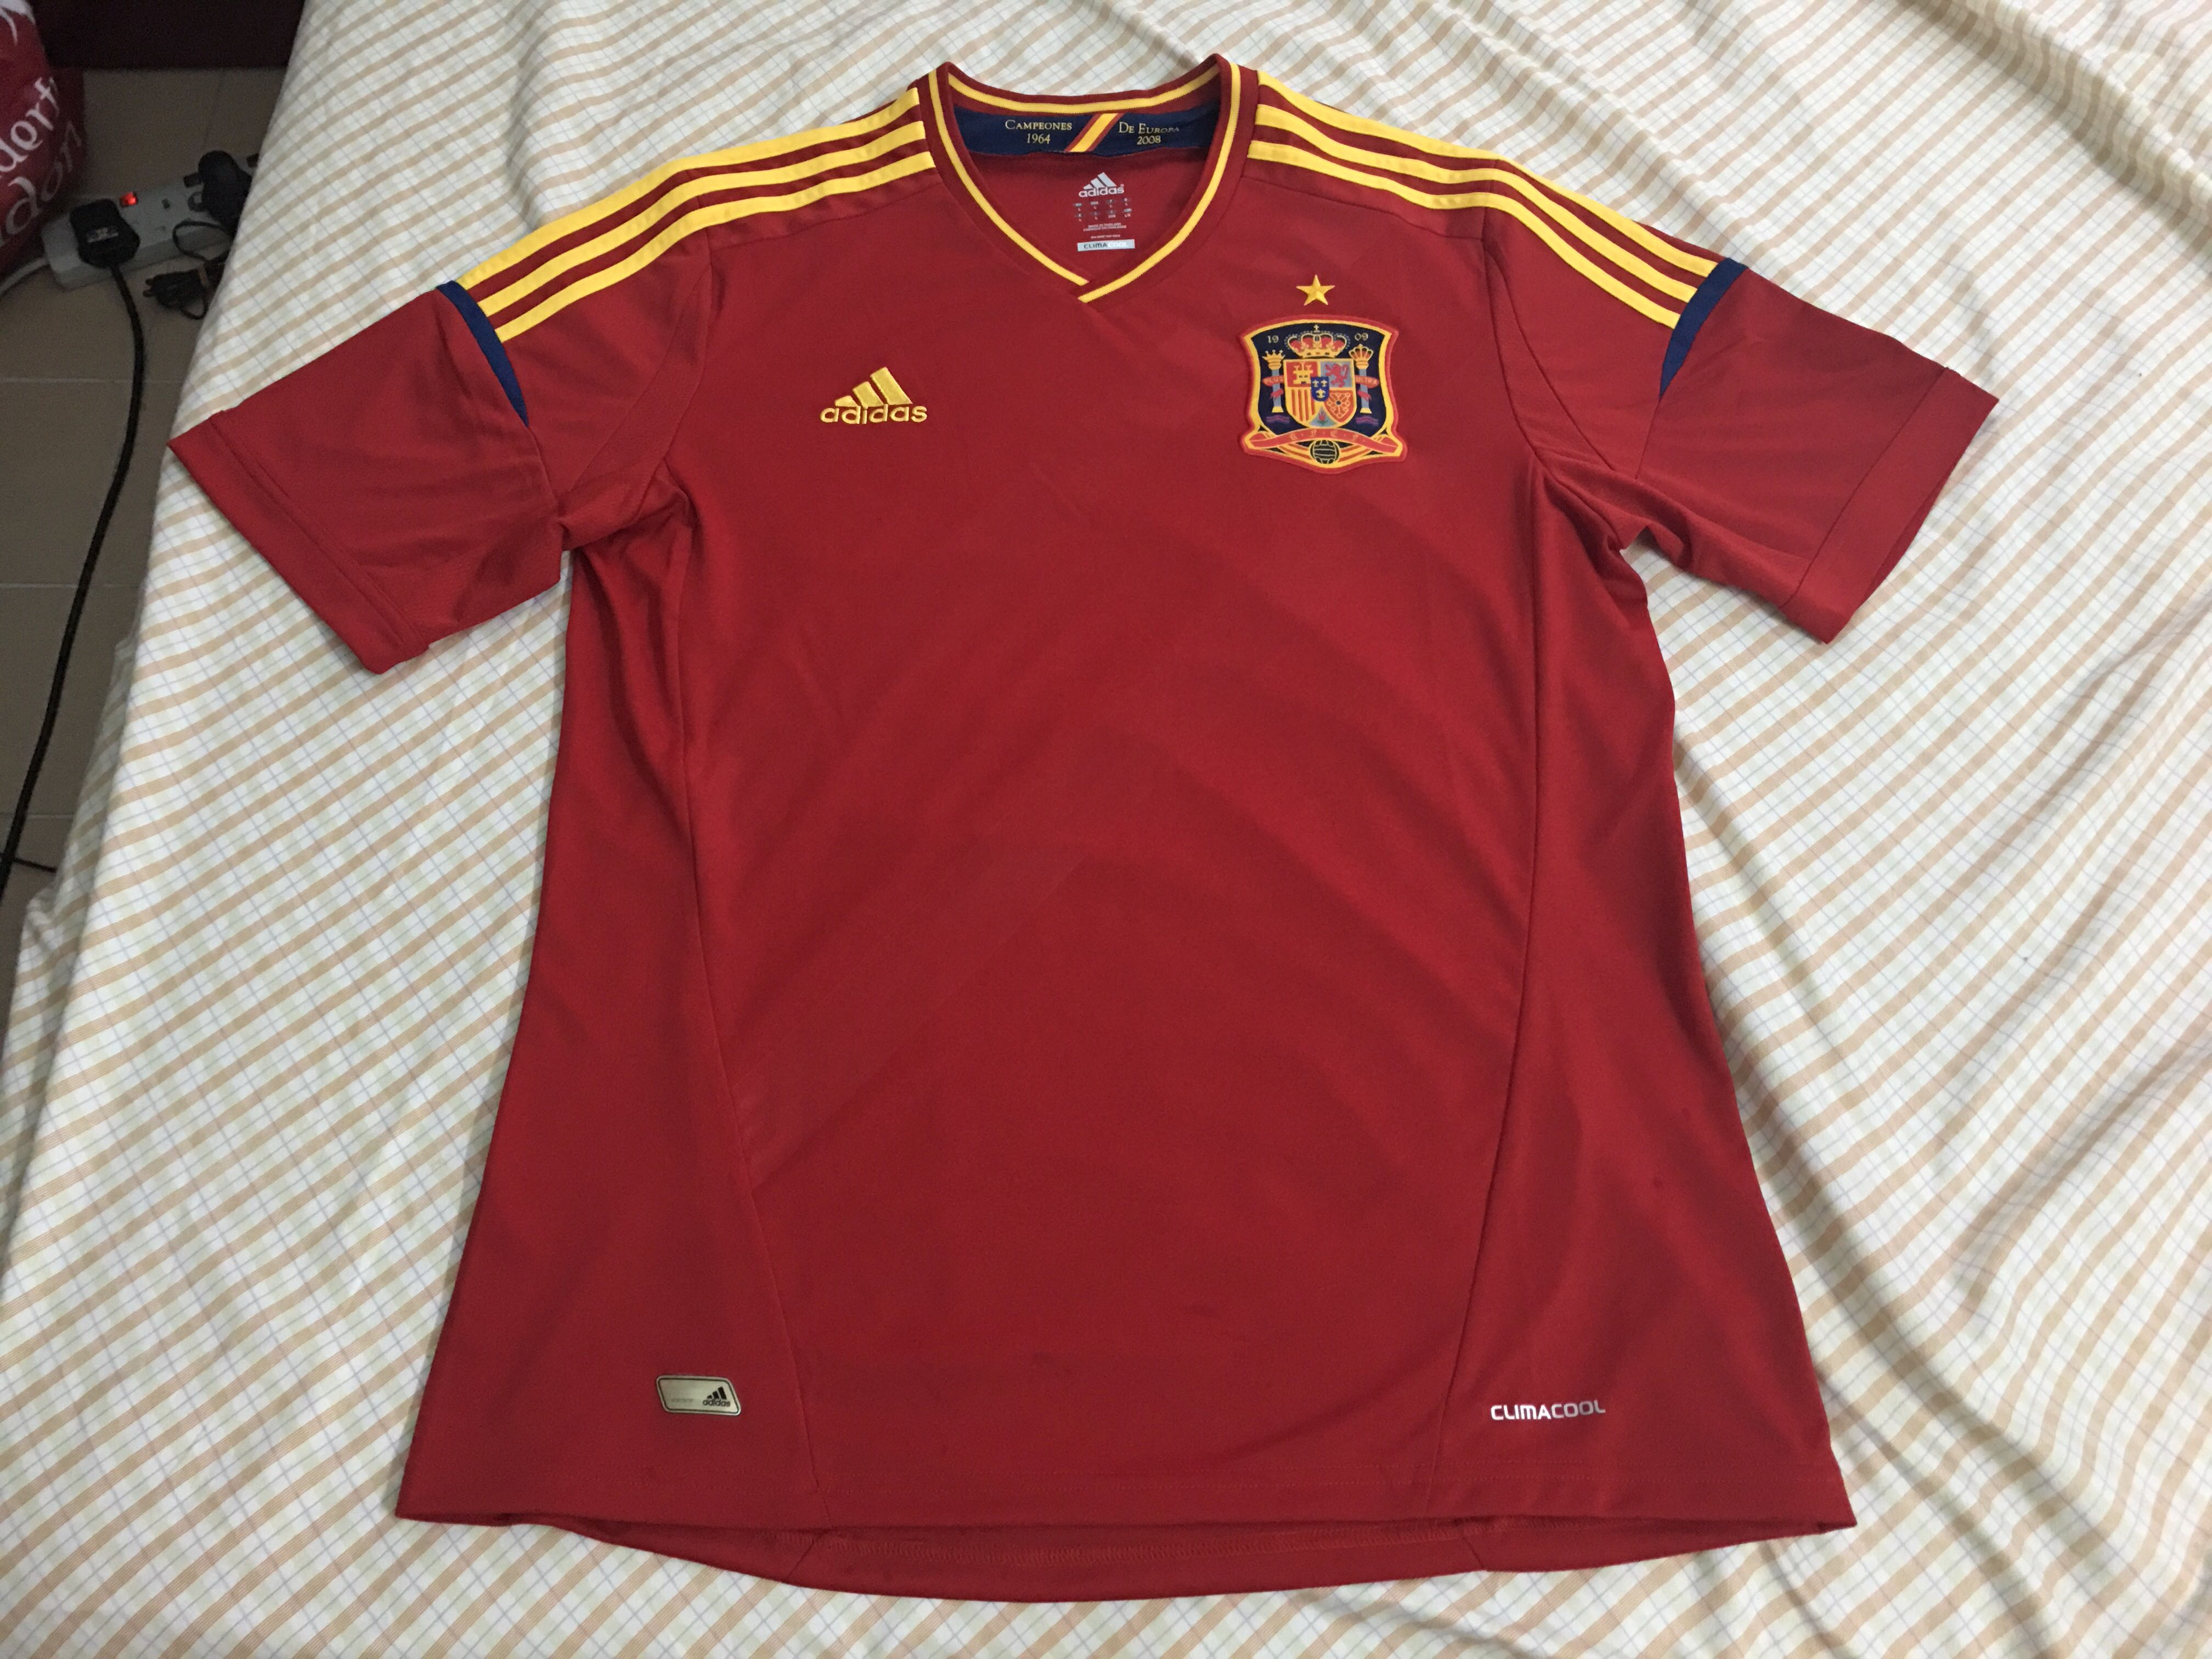 8c52b6ccf7d Authentic Spain 2012 home jersey